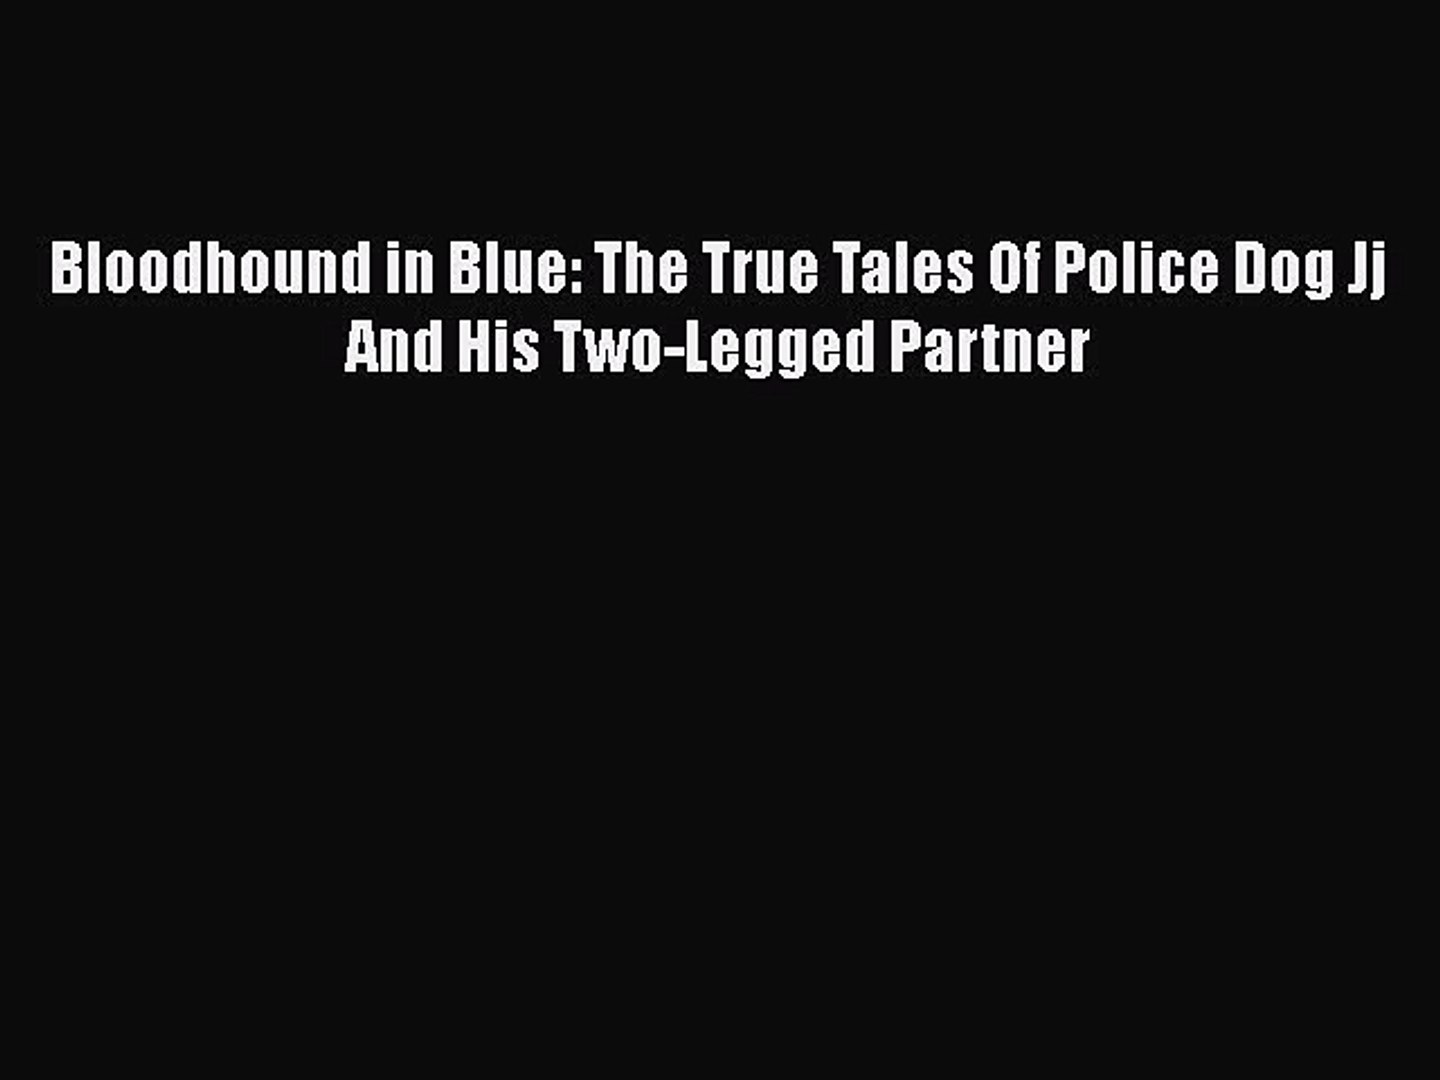 Read Book Bloodhound in Blue: The True Tales Of Police Dog Jj And His Two-Legged Partner Ebook